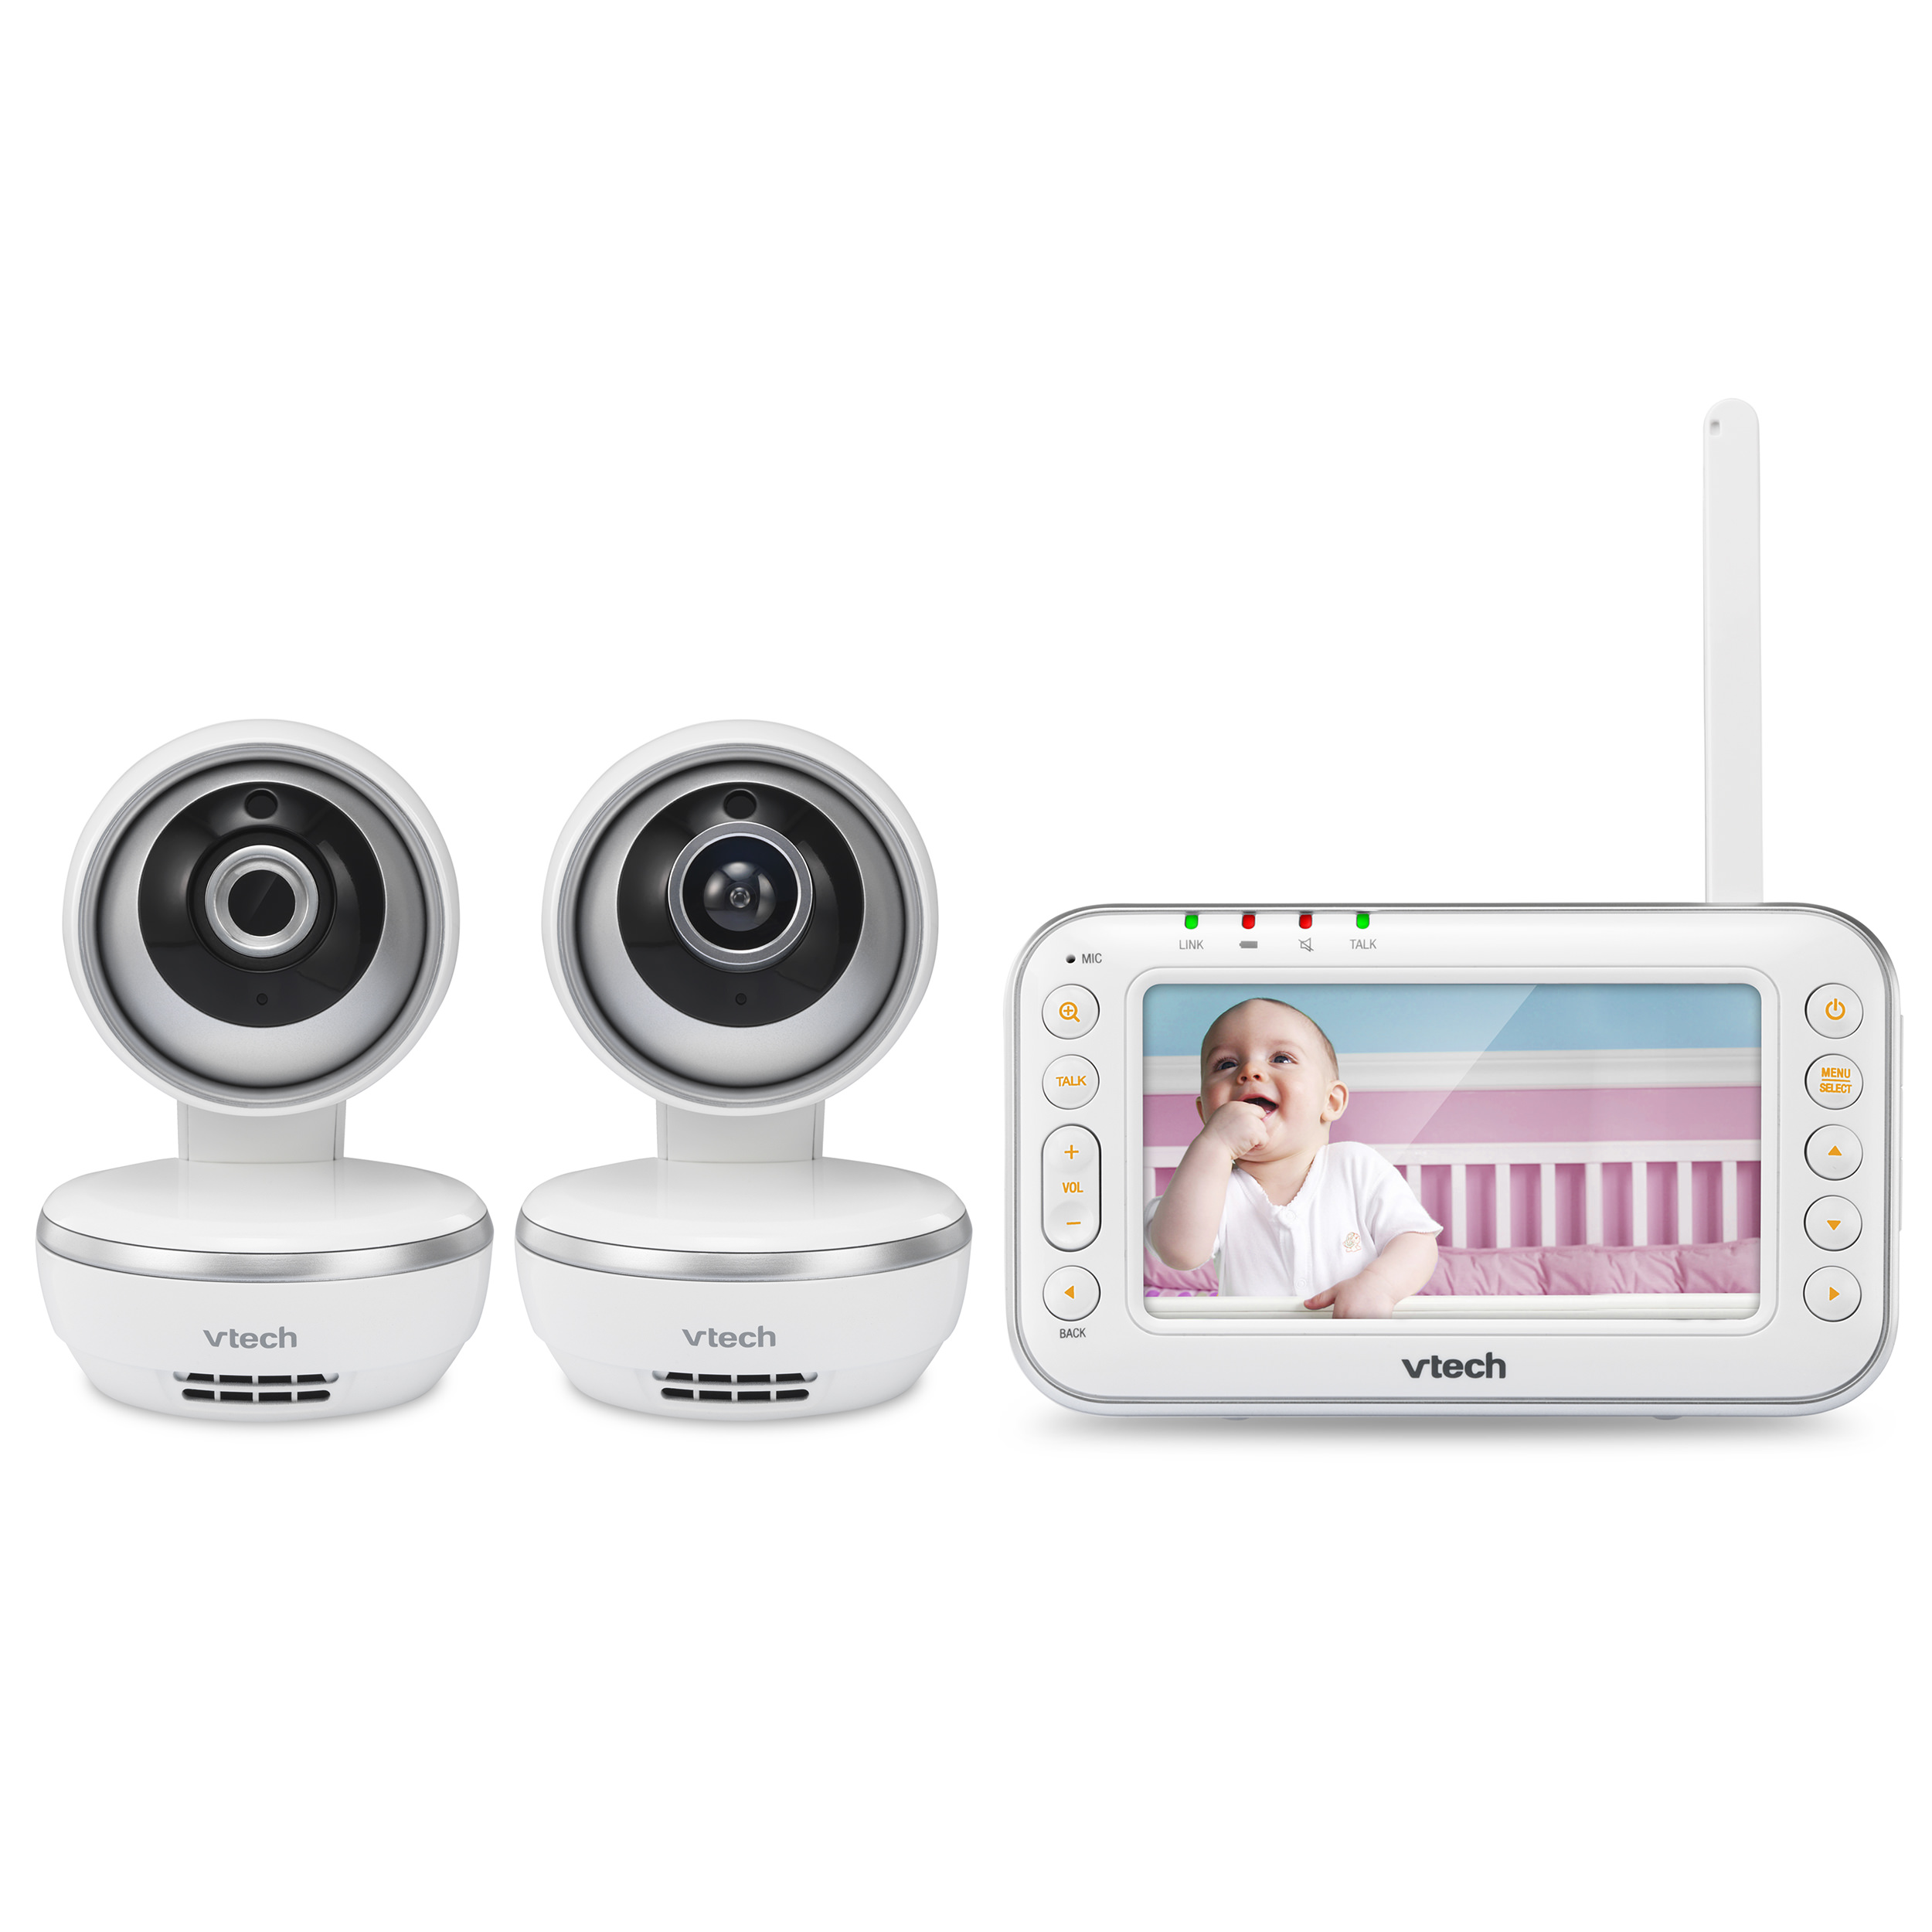 VTech VM4261-2 4.3 Digital Video Baby Monitor with 2 Pan & Tilt Cameras and Wide-Angle Lens and Standard Lens,... by VTech